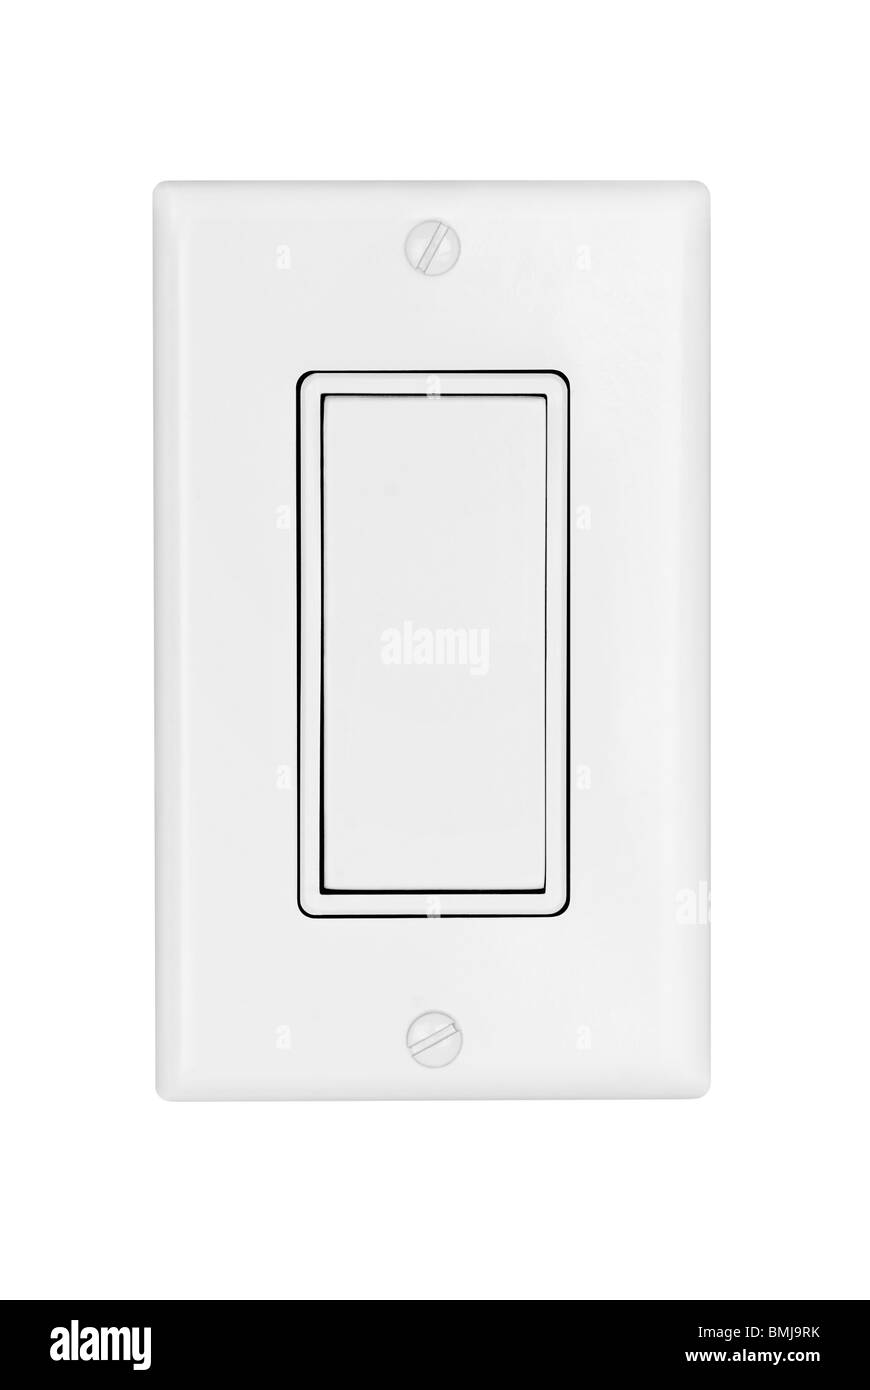 A modern electrical light switch isolated on white - Stock Image